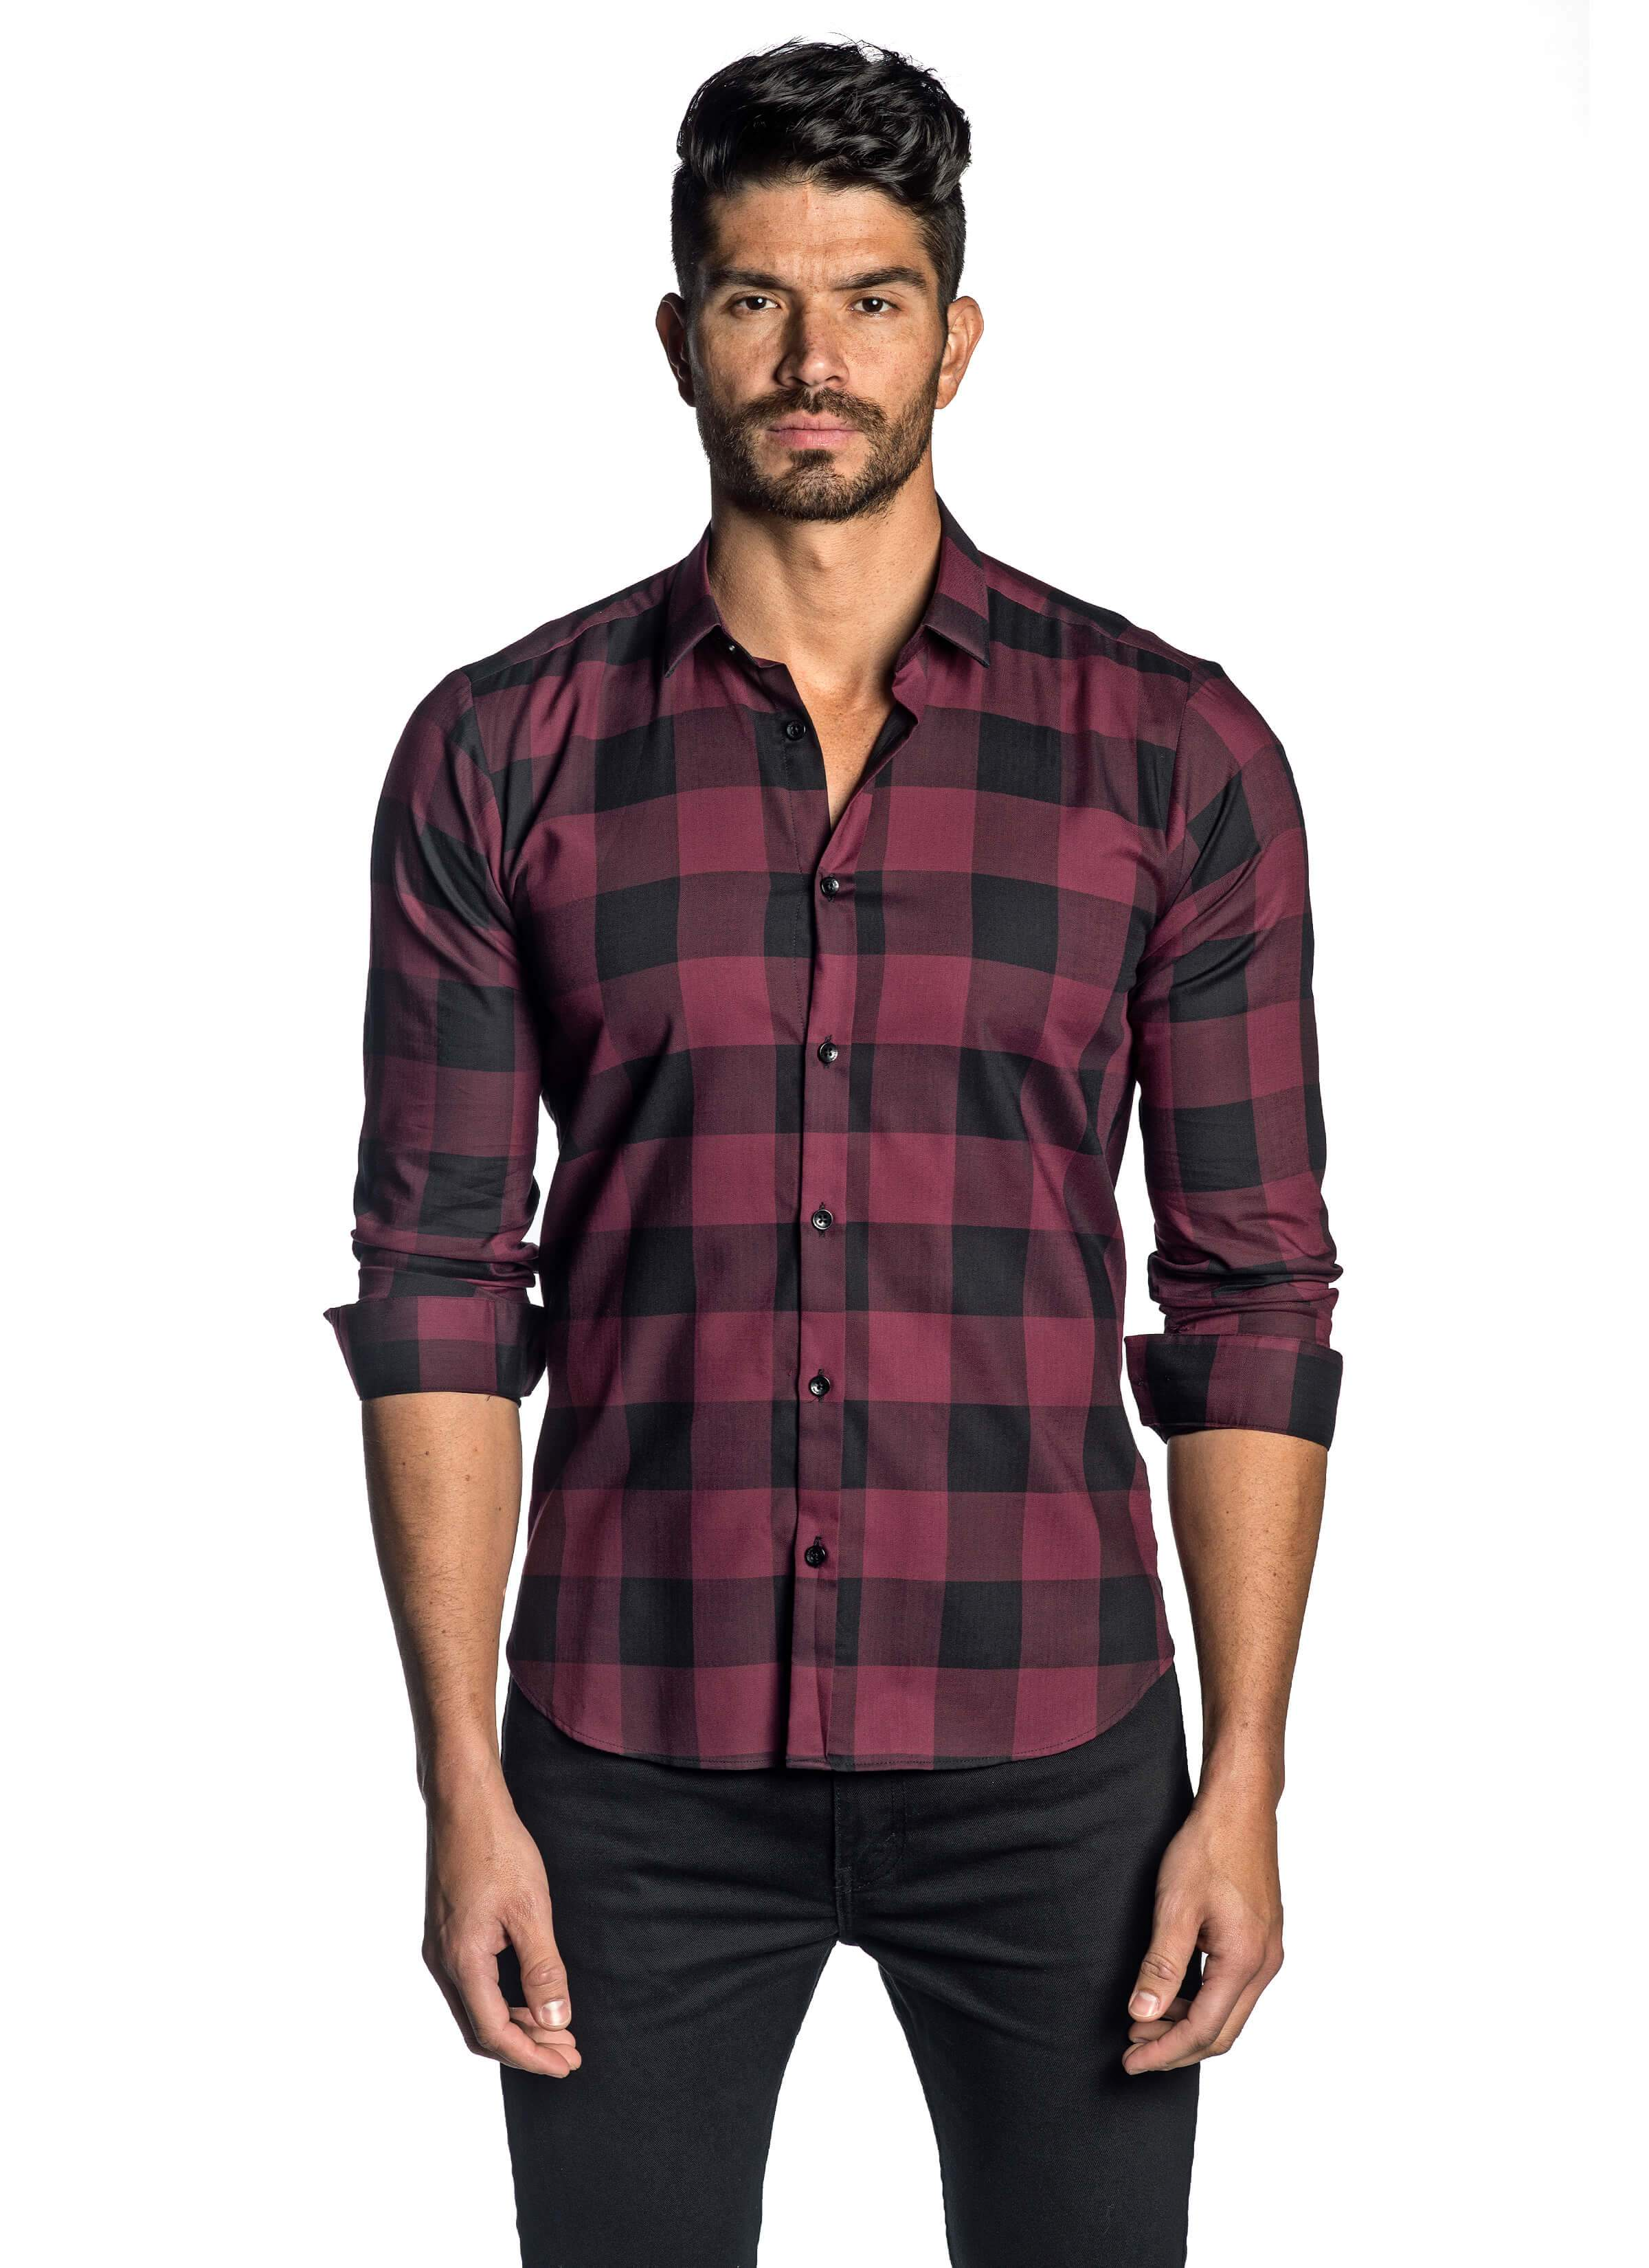 Burgundy and Black Plaid Shirt for Men AH-T-7813